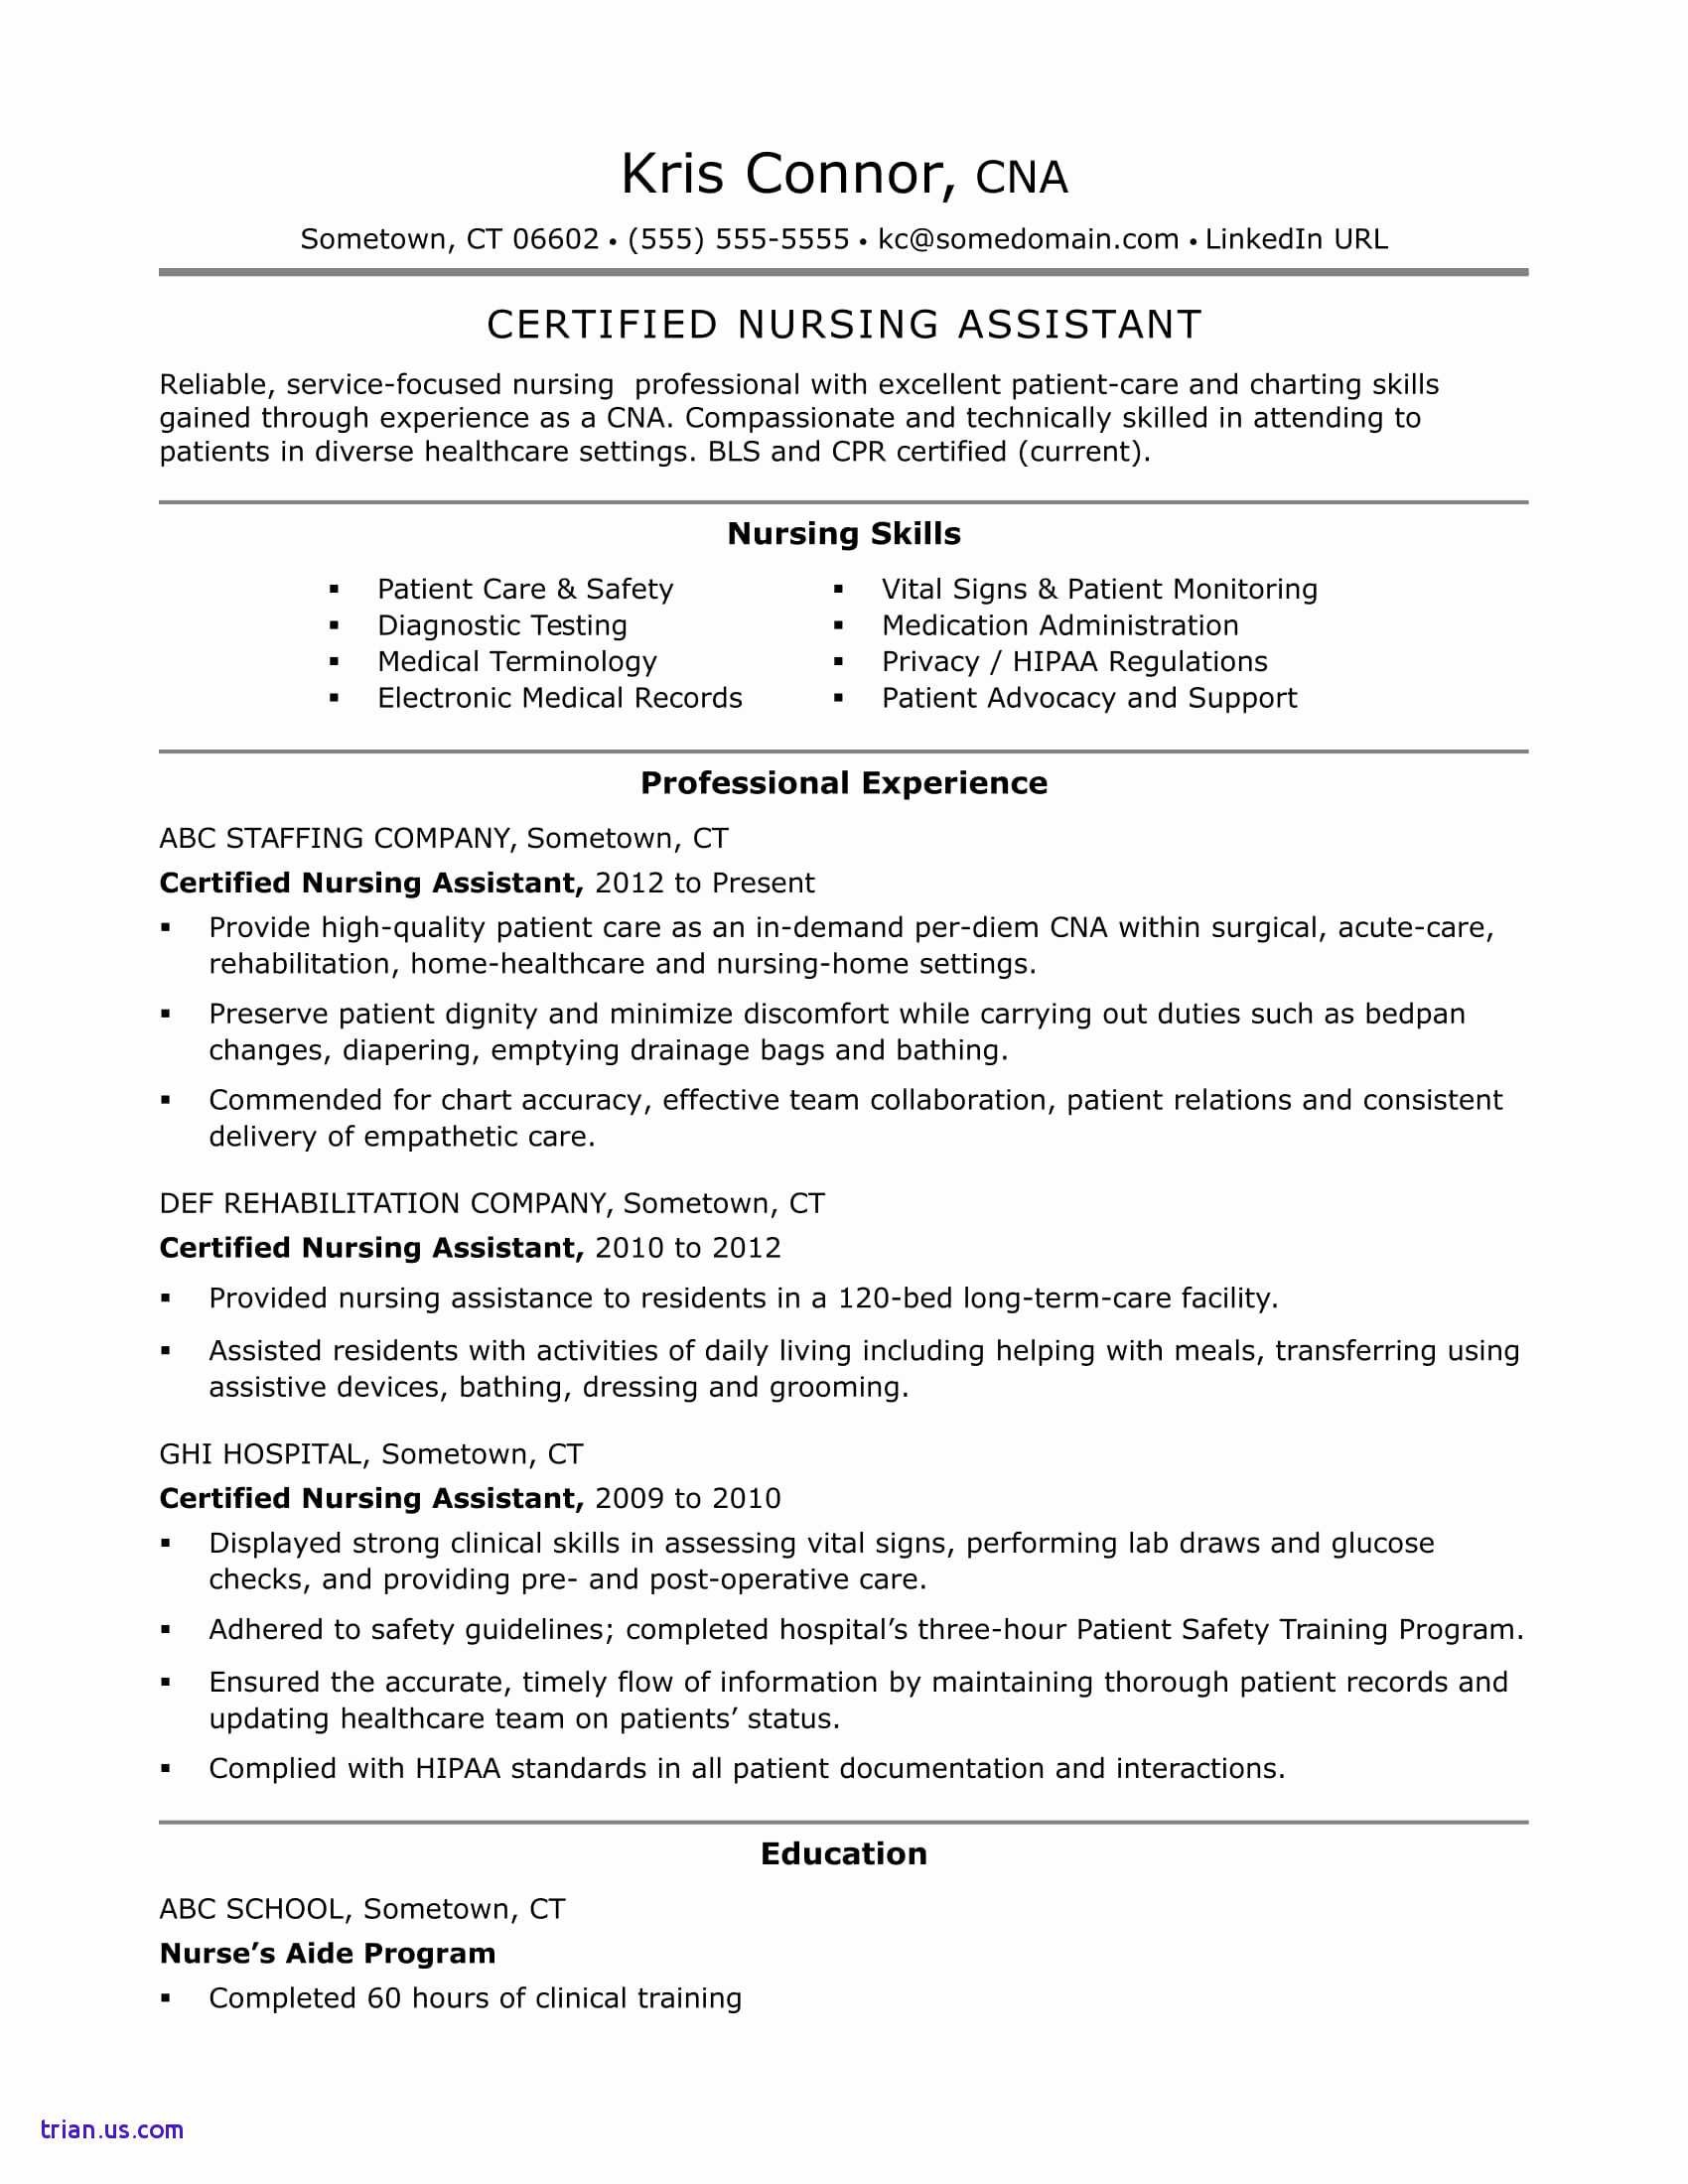 Home Health Aide Resume Skills - Nursing assistant Resume Examples